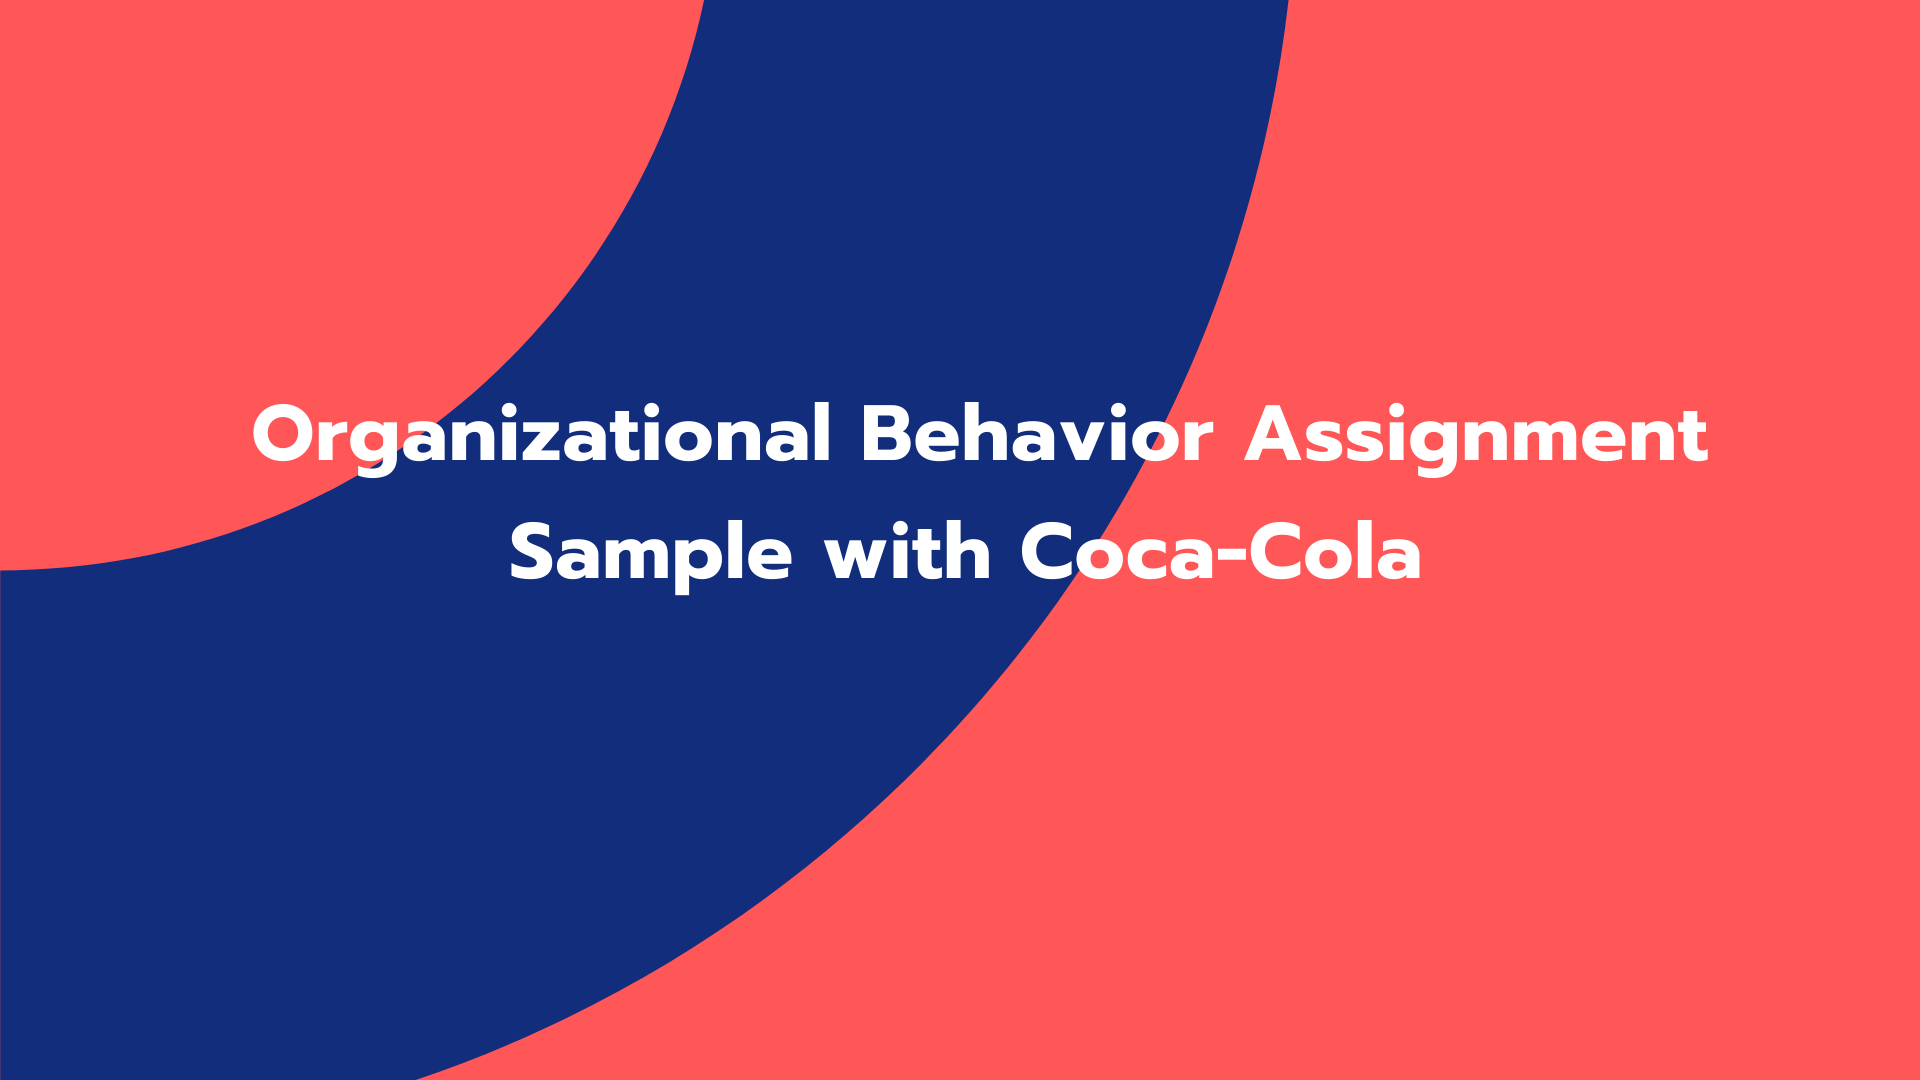 Organizational Behavior Assignment Sample with Coca-Cola